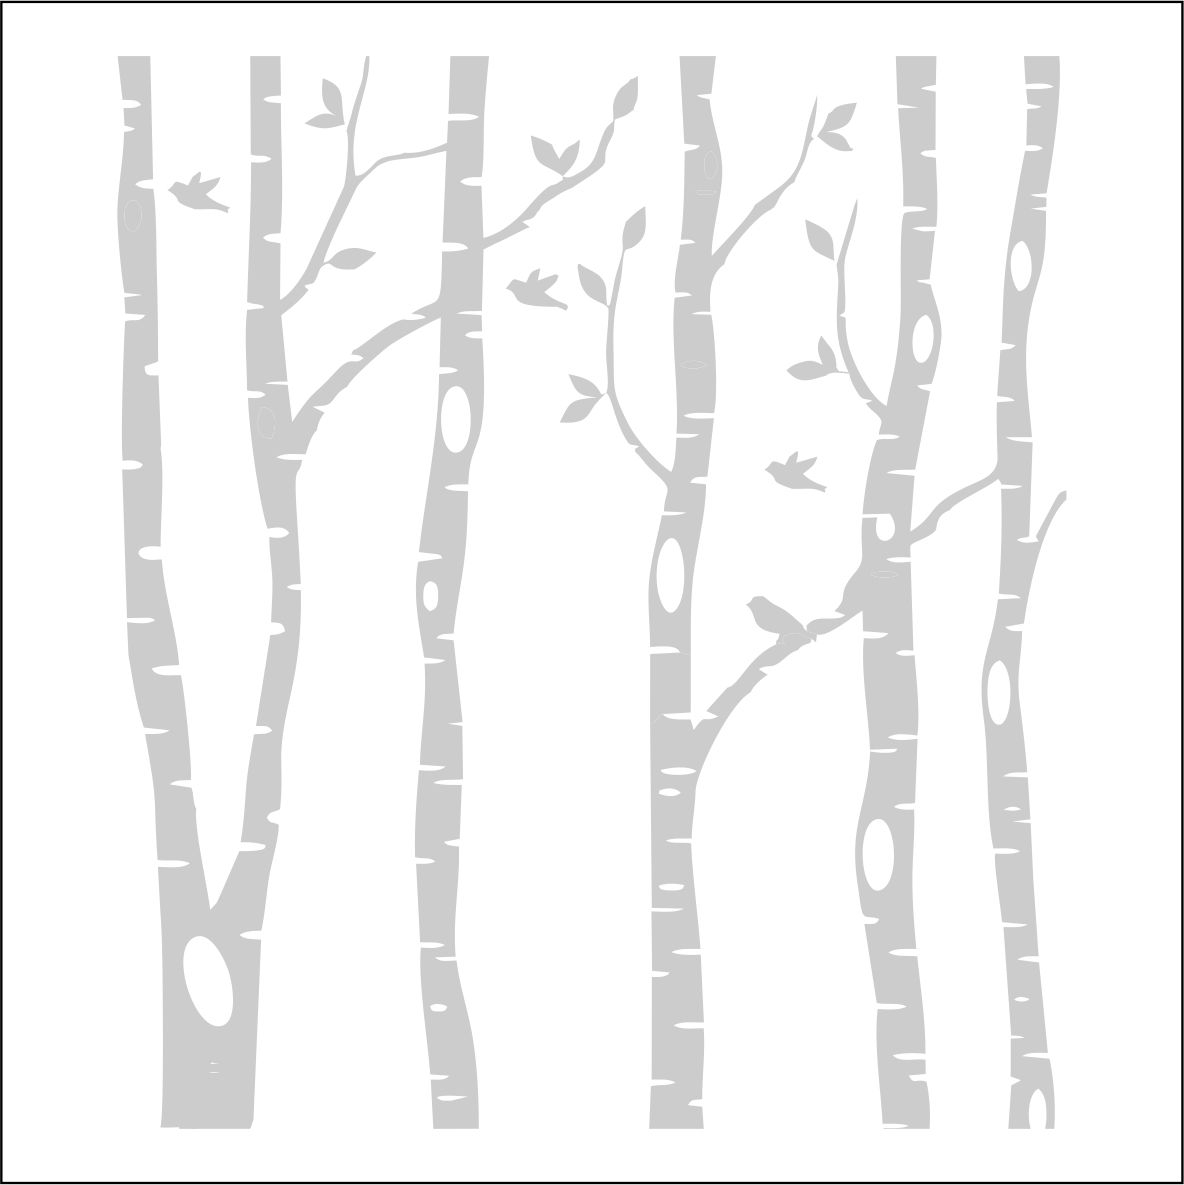 Birch tree clipart black and white.